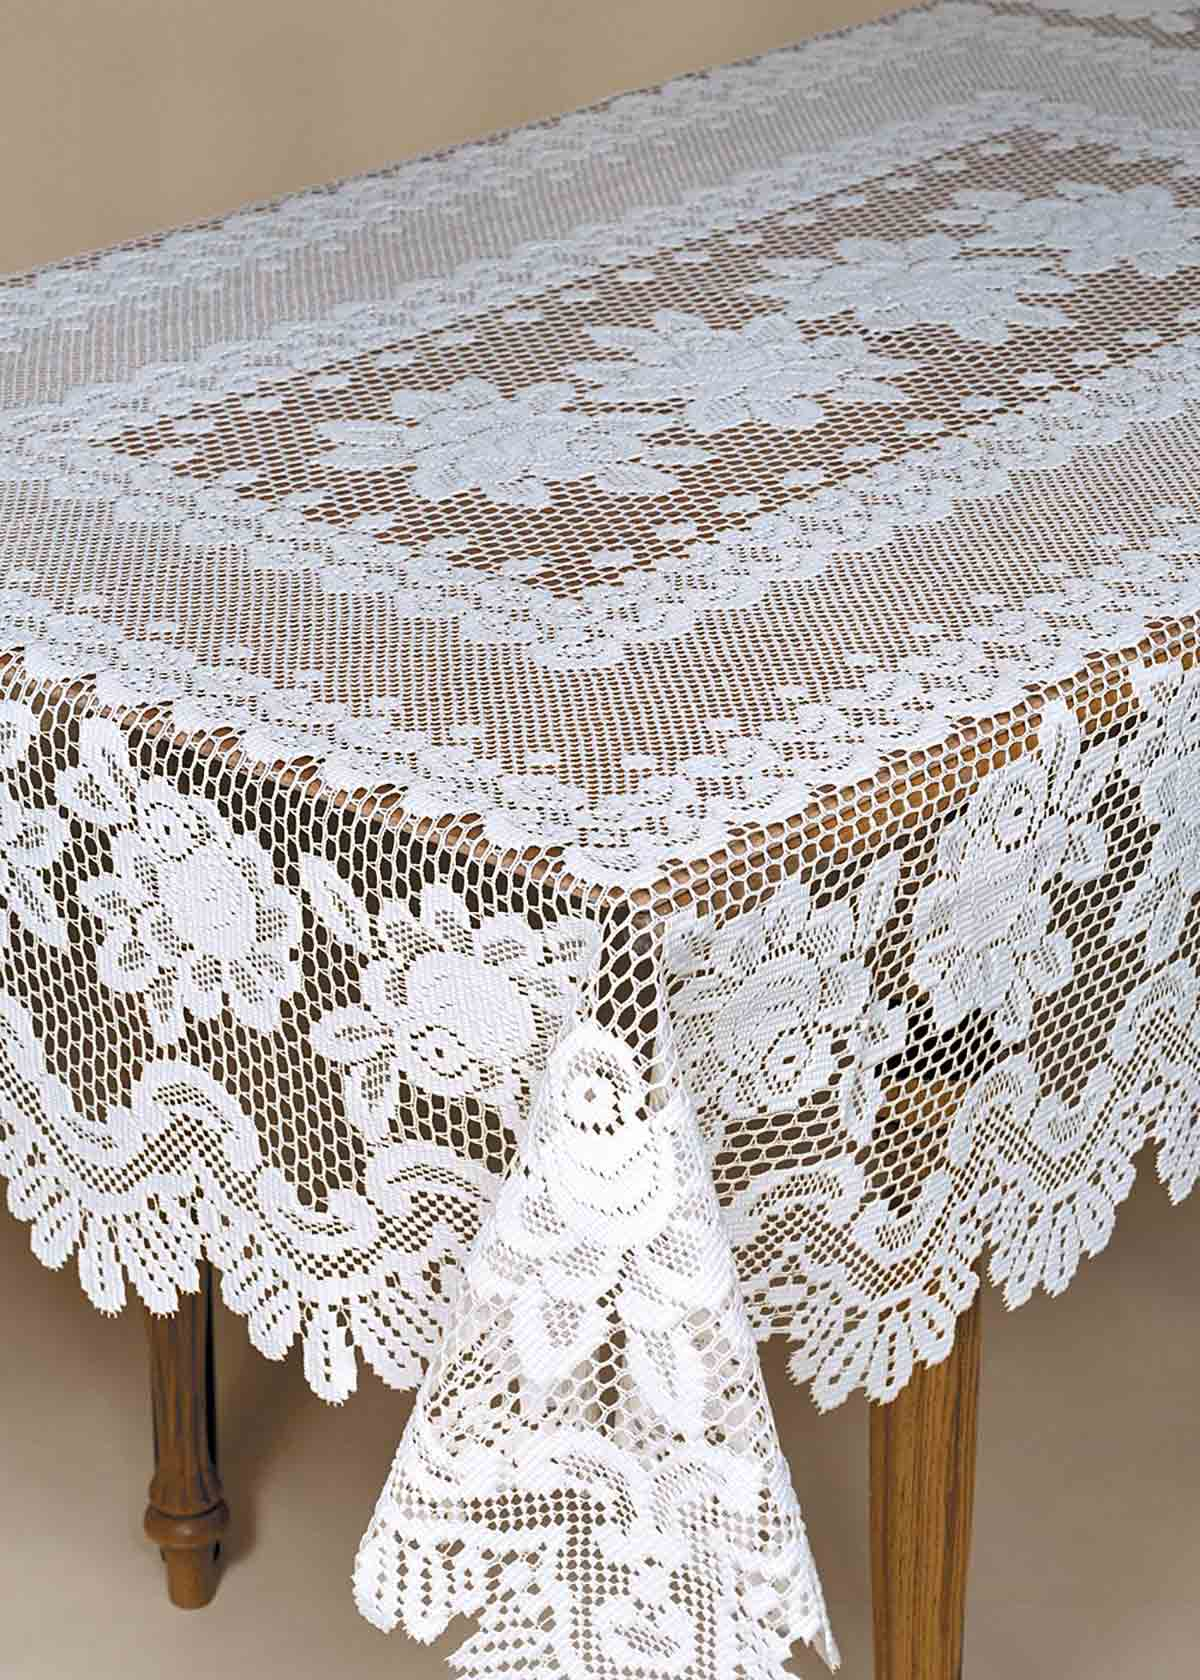 Square Lace Tablecloths | Target Vinyl Tablecloth | Lace Tablecloths